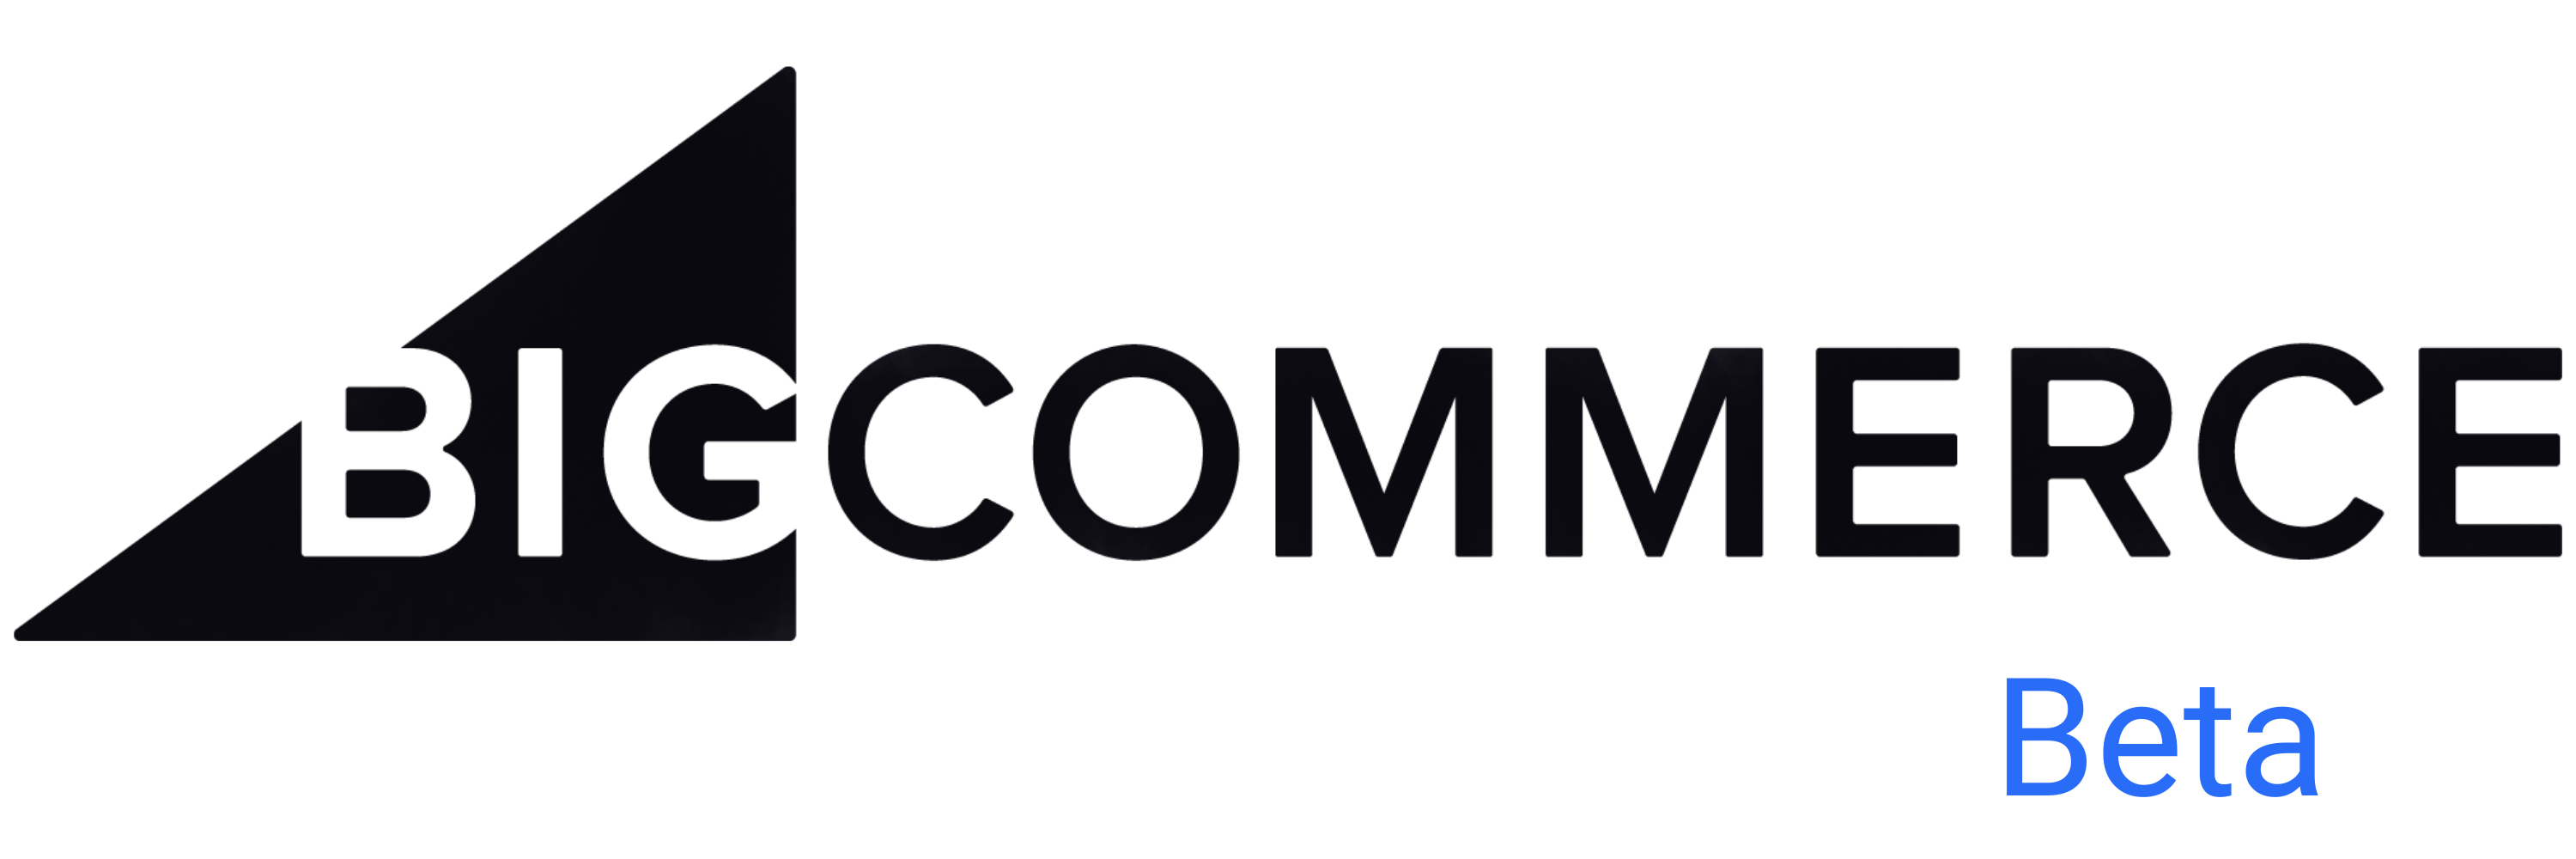 bigcommerce beta